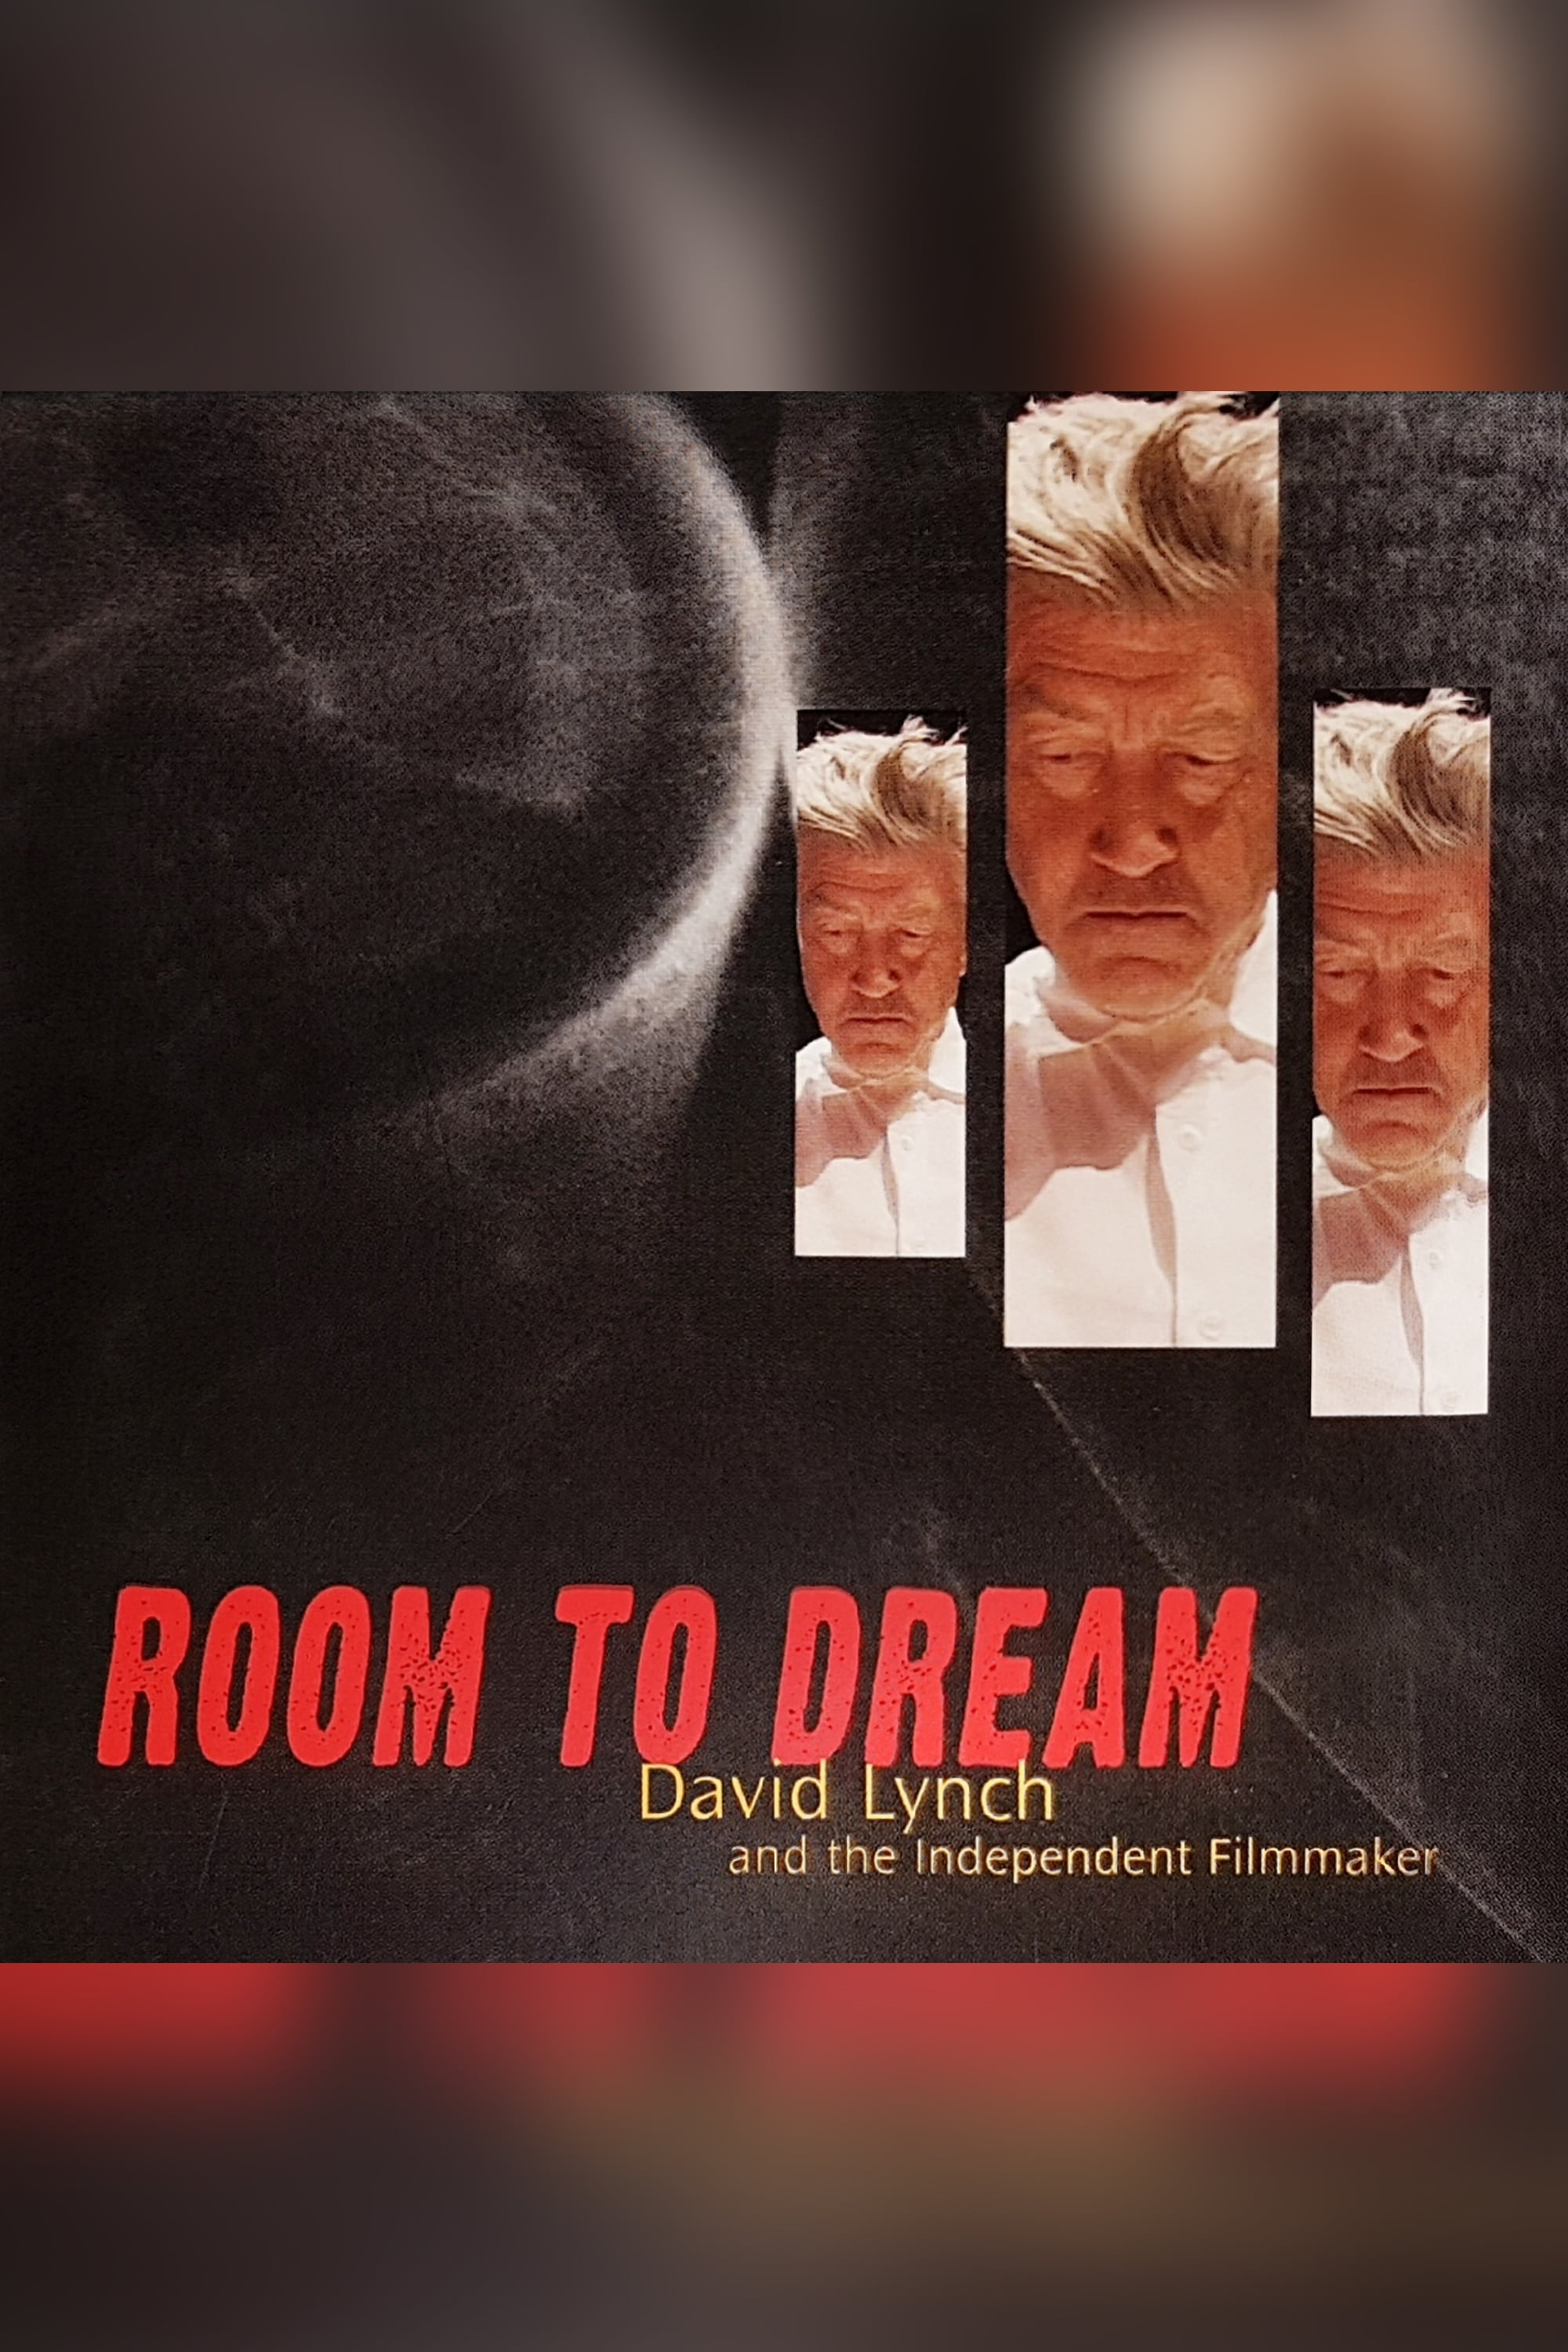 watch Room to Dream: David Lynch and the Independent Filmmaker 2005 online free